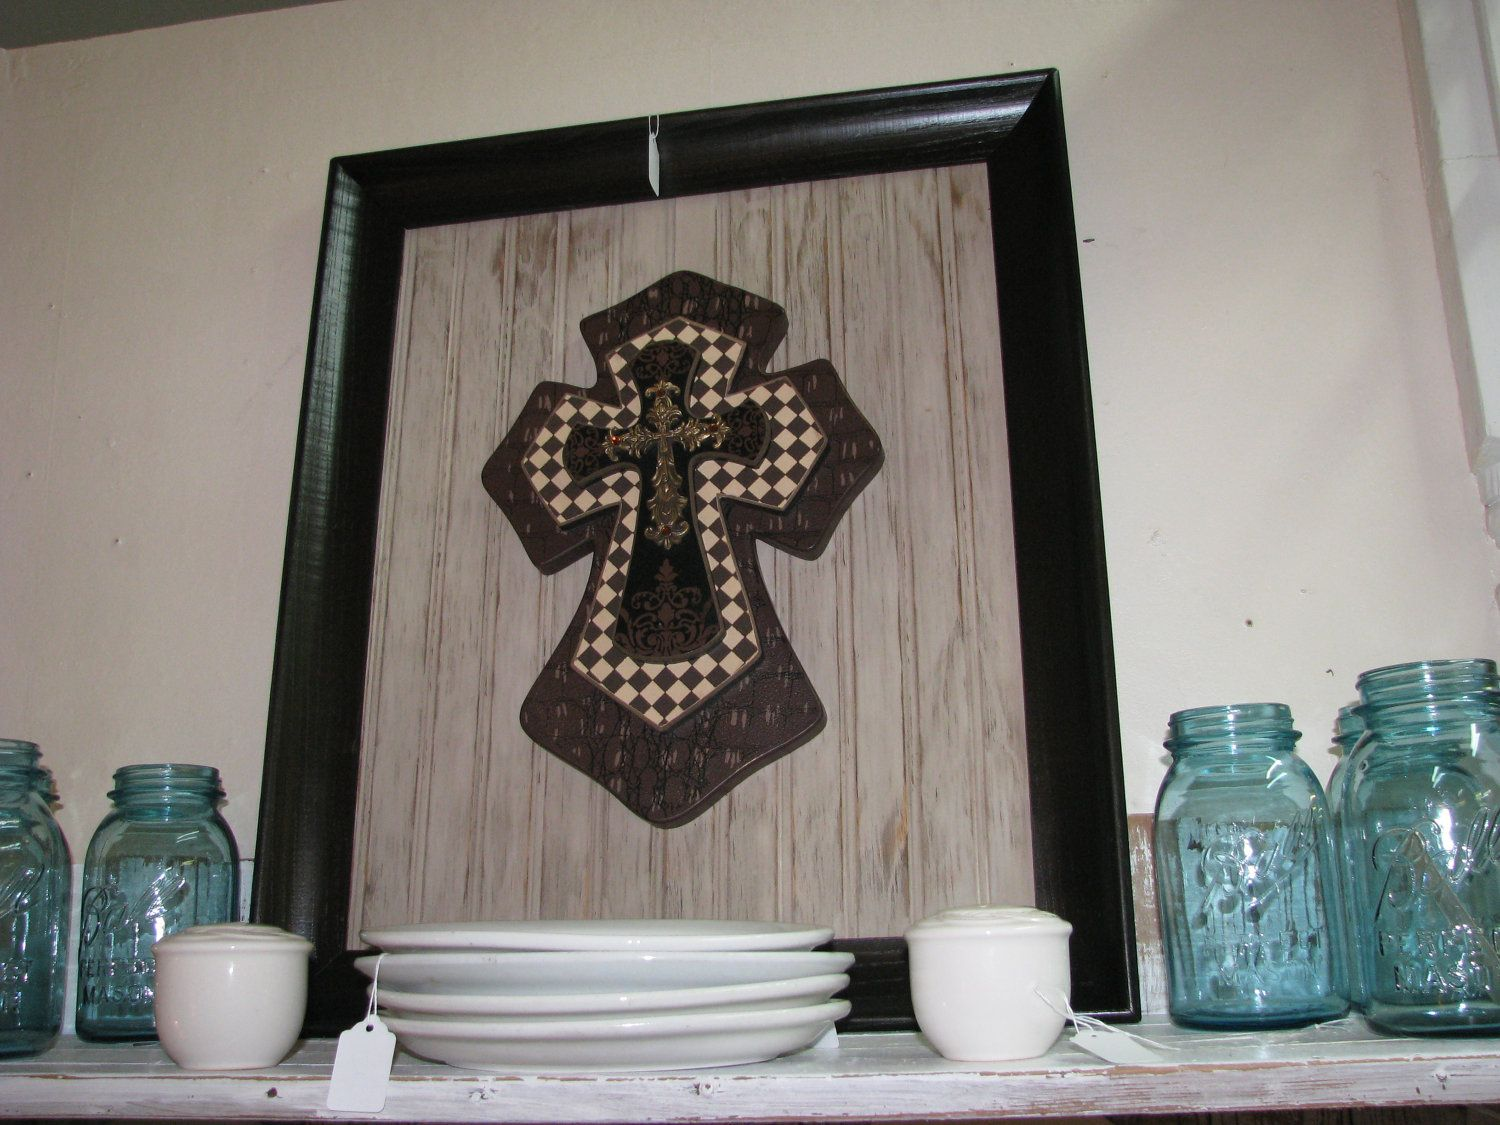 Attirant Shabby Chic, Rustic, French Country, Faith Home Decor Cross Framed Art.  $59.95